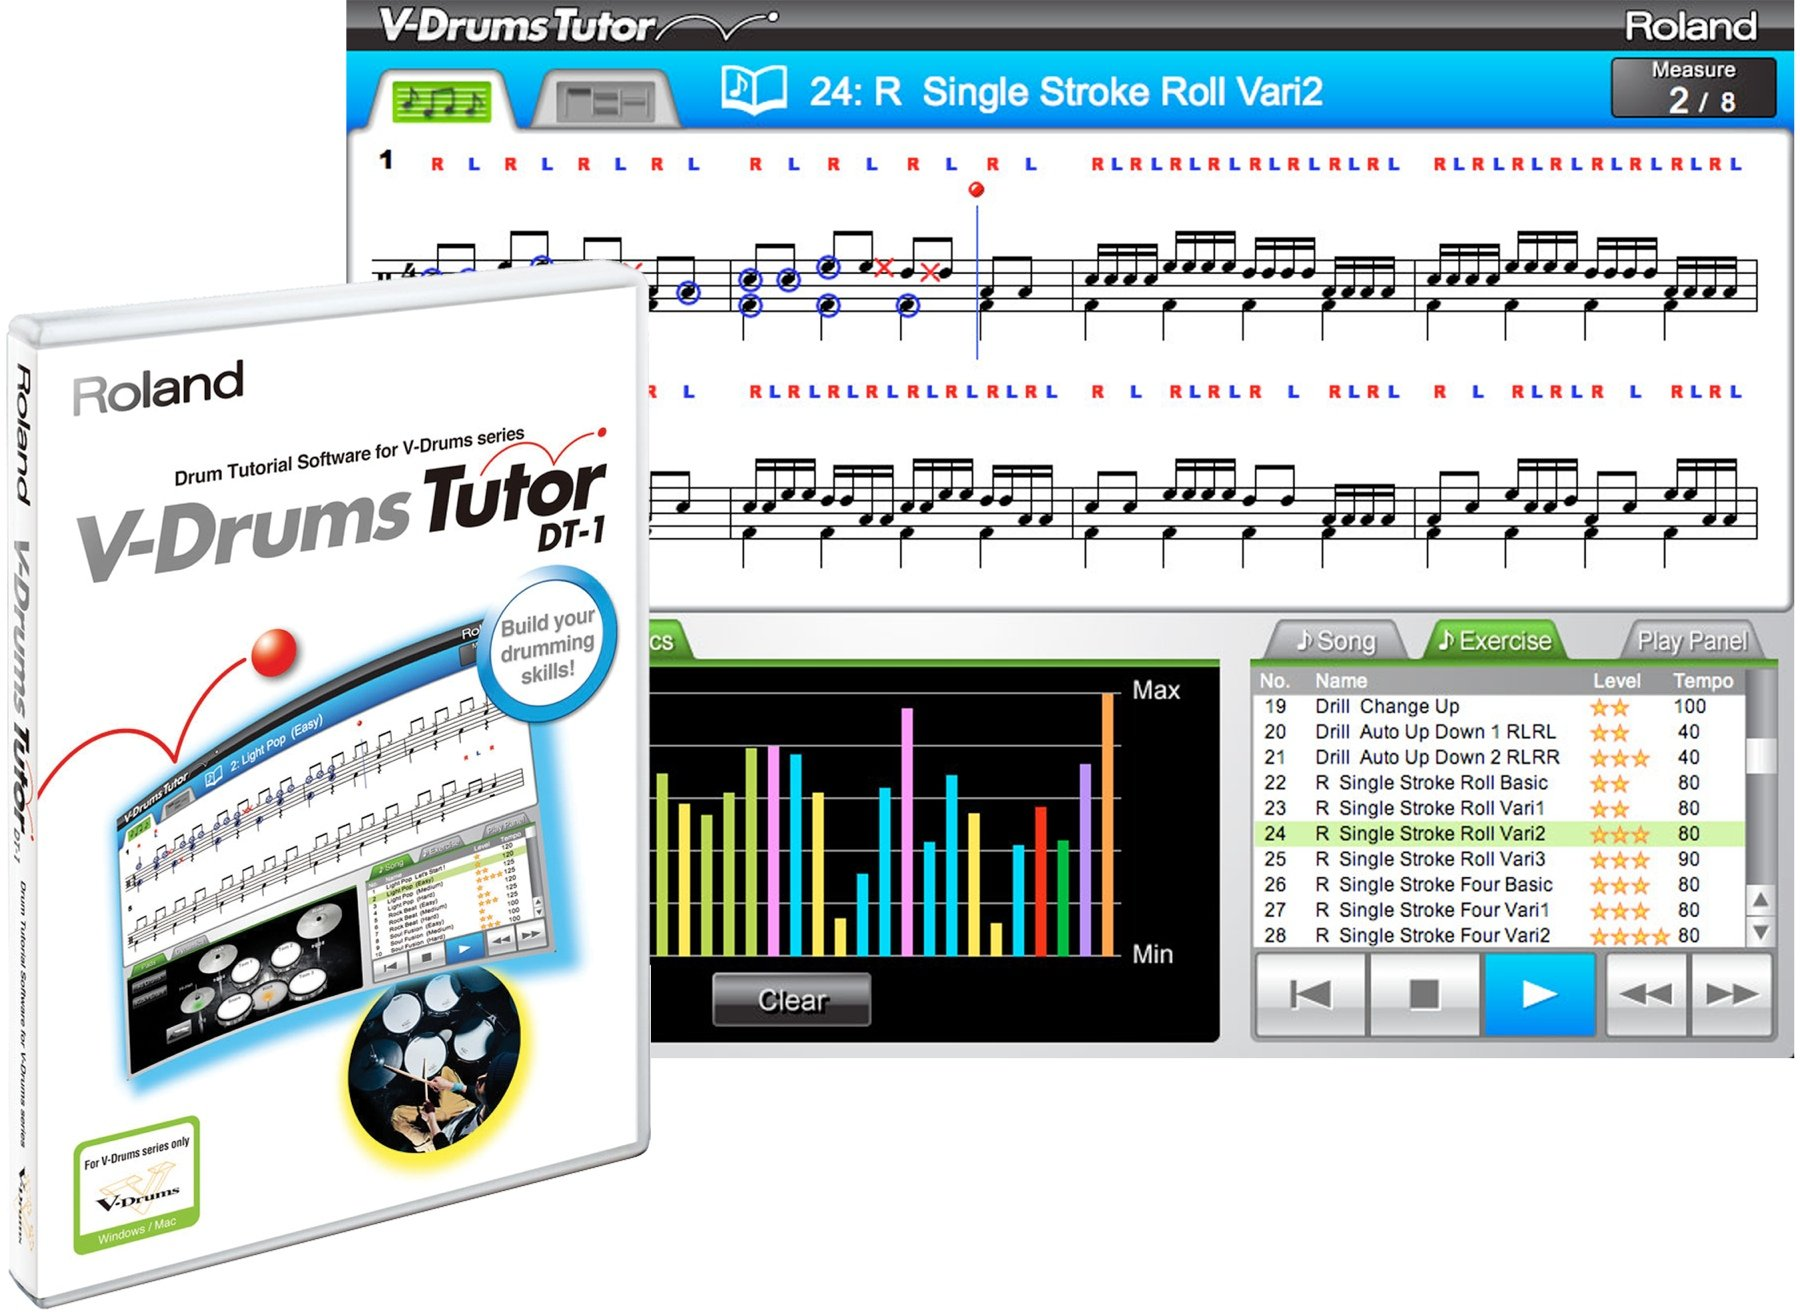 dt 1 v drums tutor free download